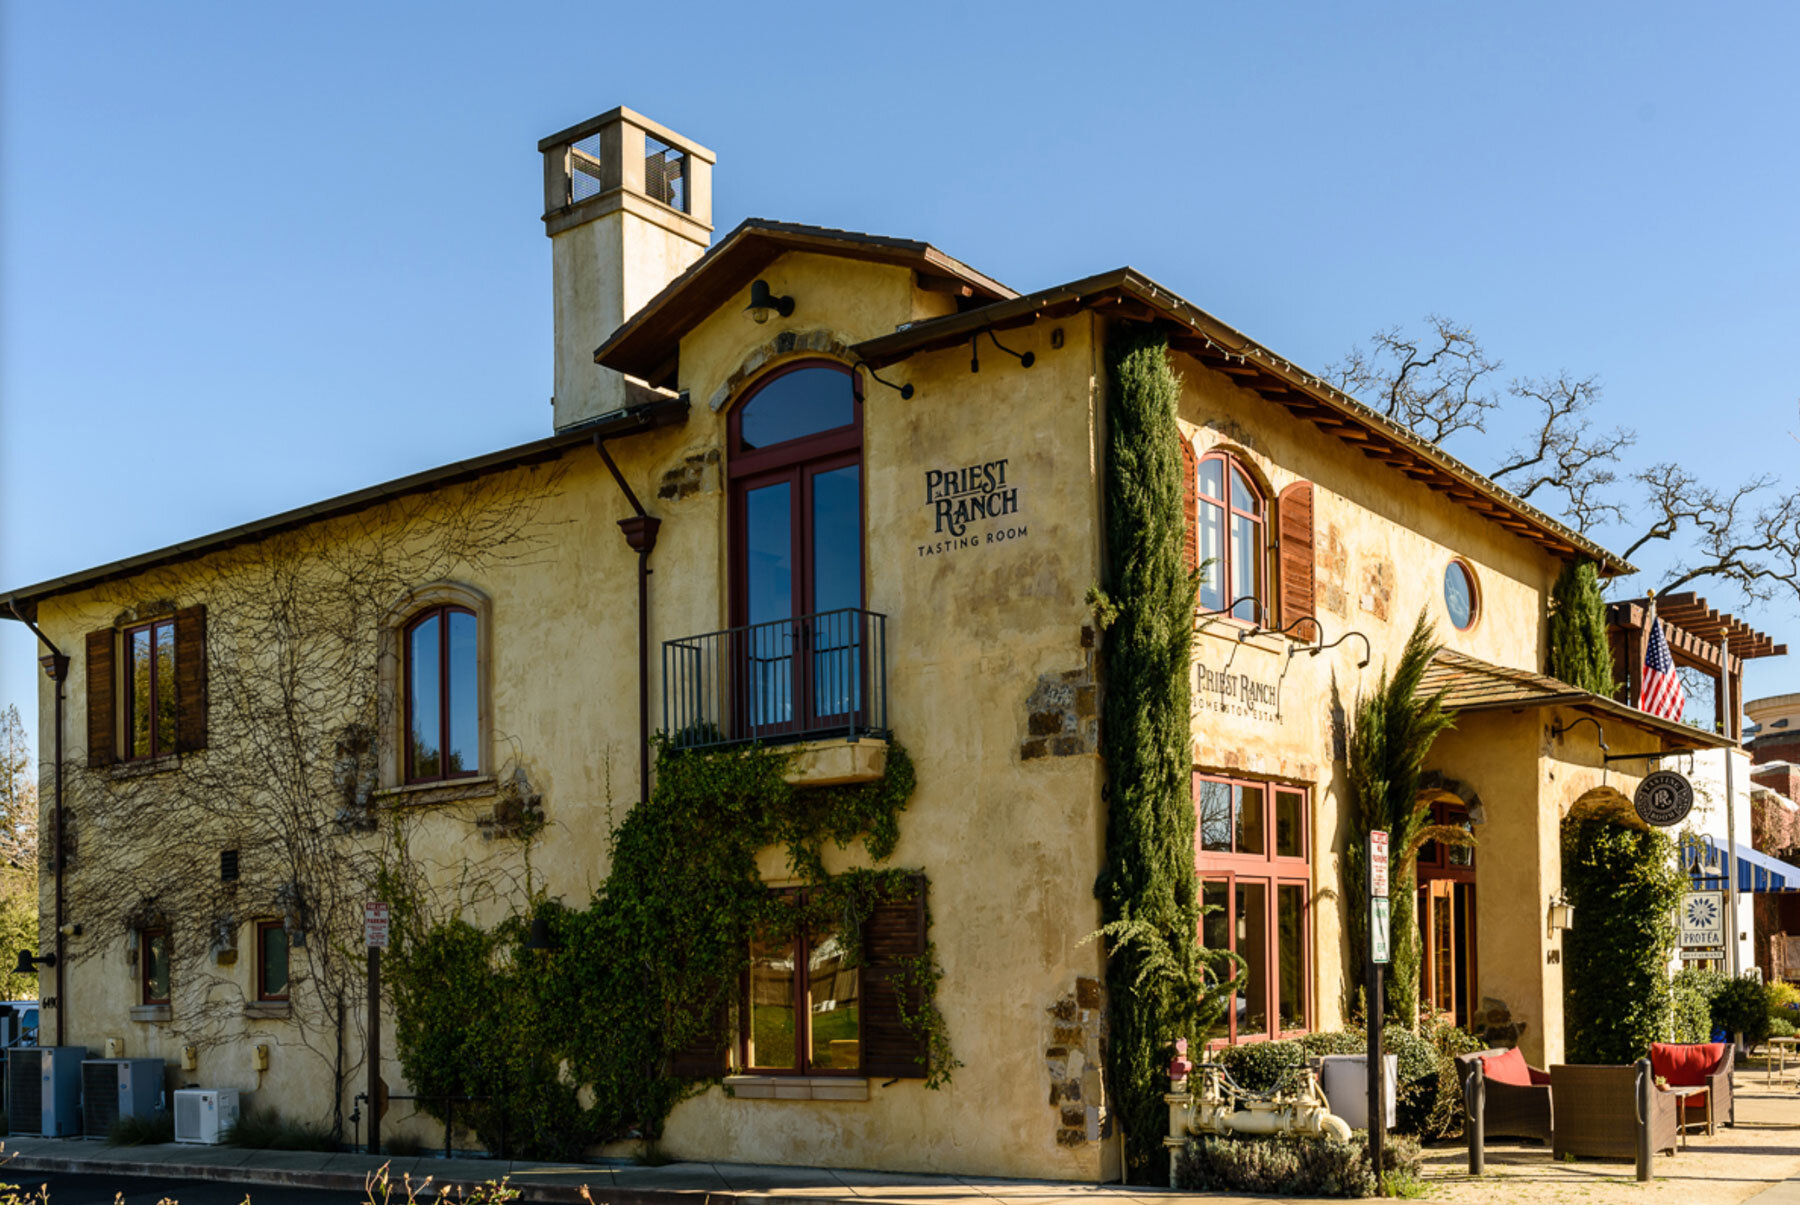 Priest Ranch Winery in Yountville (Napa Valley) Photo Credit: Priest Ranch Winery